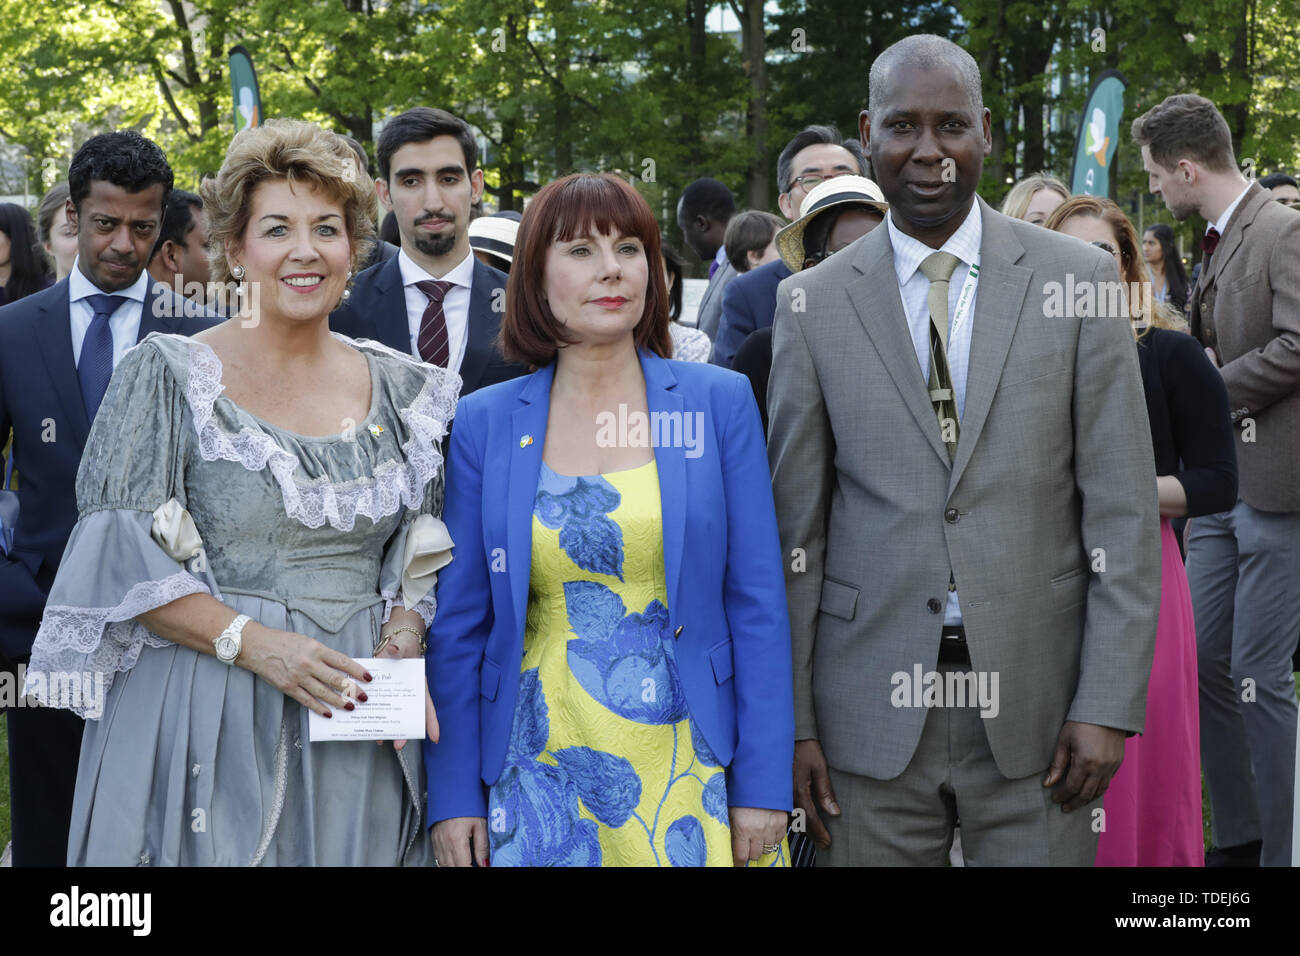 New York, NY, USA. 14th June, 2019. United Nations, New York, USA, June 15, 2019 - Irish Minister Culture, Heritage & the Gaeltacht Josepha Madigan, Permanent Representative of Ireland to the United Nations Geraldine Byrne Nason and Tijjani Muhammad-Bande, Permanent Representative of Nigeria to the United Nations and President elected of the General Assembly dress in the fashion of the early 1800s a tended the first celebration of Blooms day today at the UN Headquarters in New York. The Bloomsday Festival is an annual celebration of James Joyce's modernist epic Ulysses, the events of which t - Stock Image